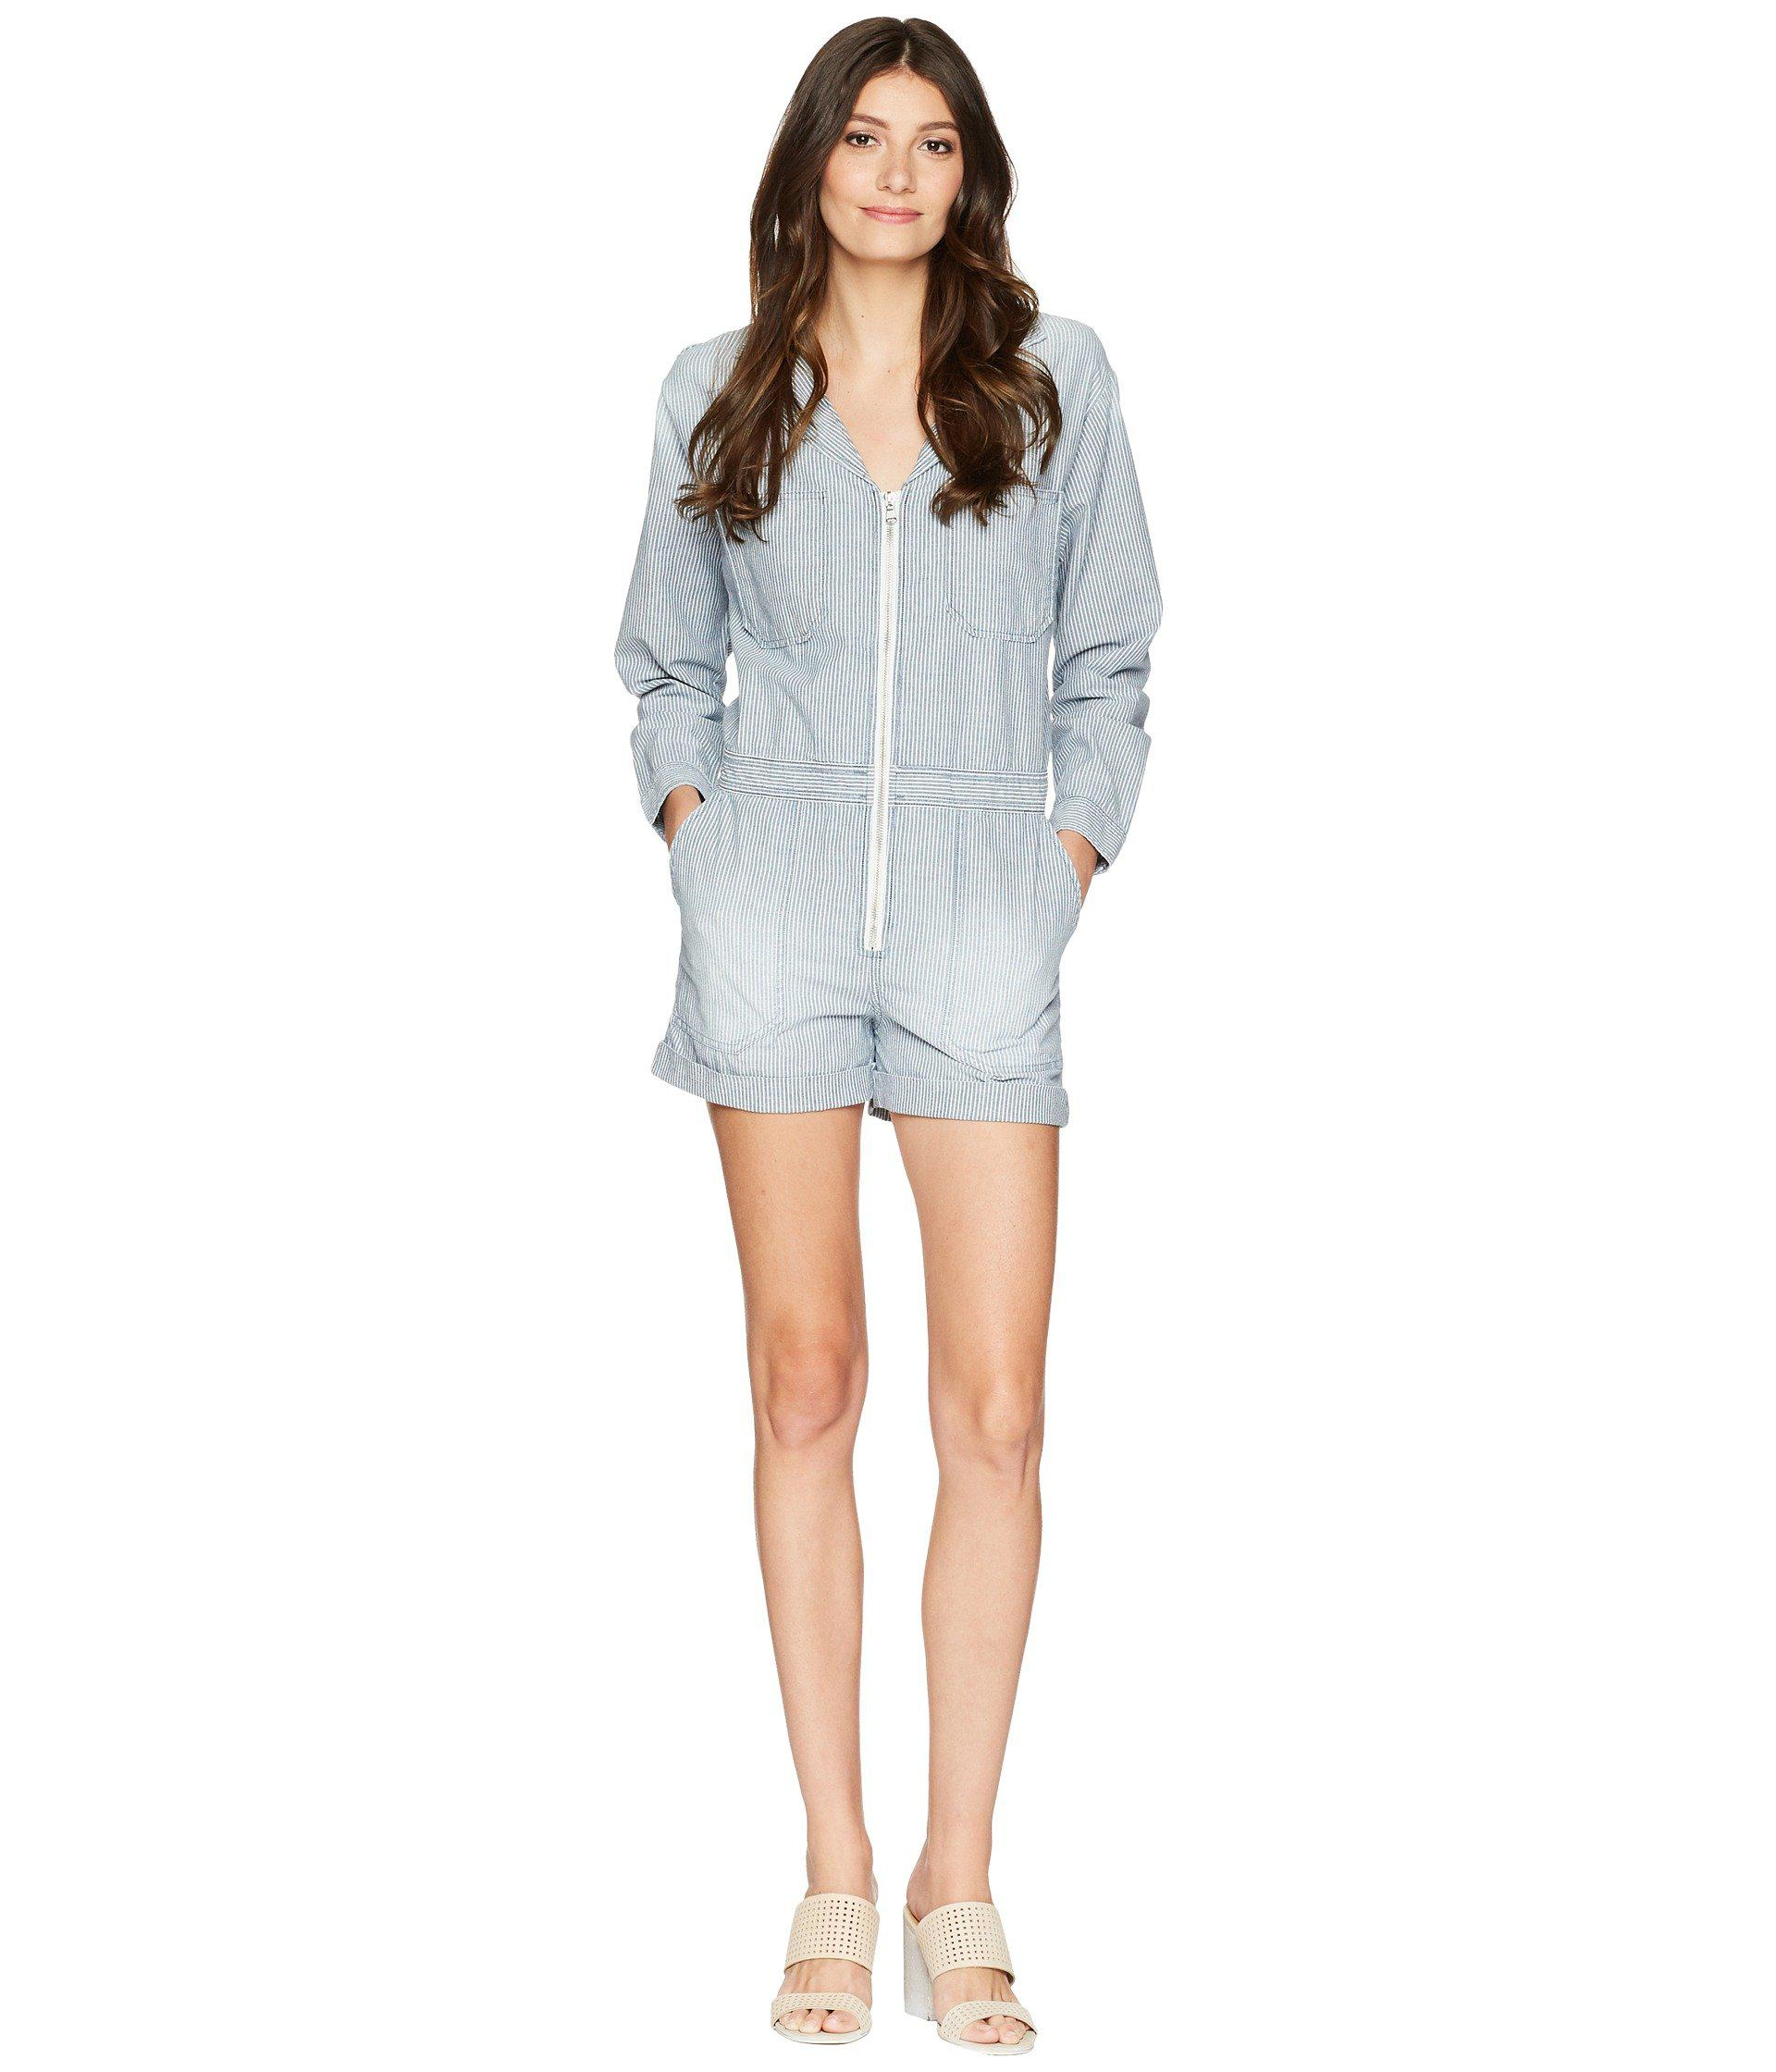 98264d57fc8c Lyst - AG Jeans Rochelle Romper in Blue - Save 62%